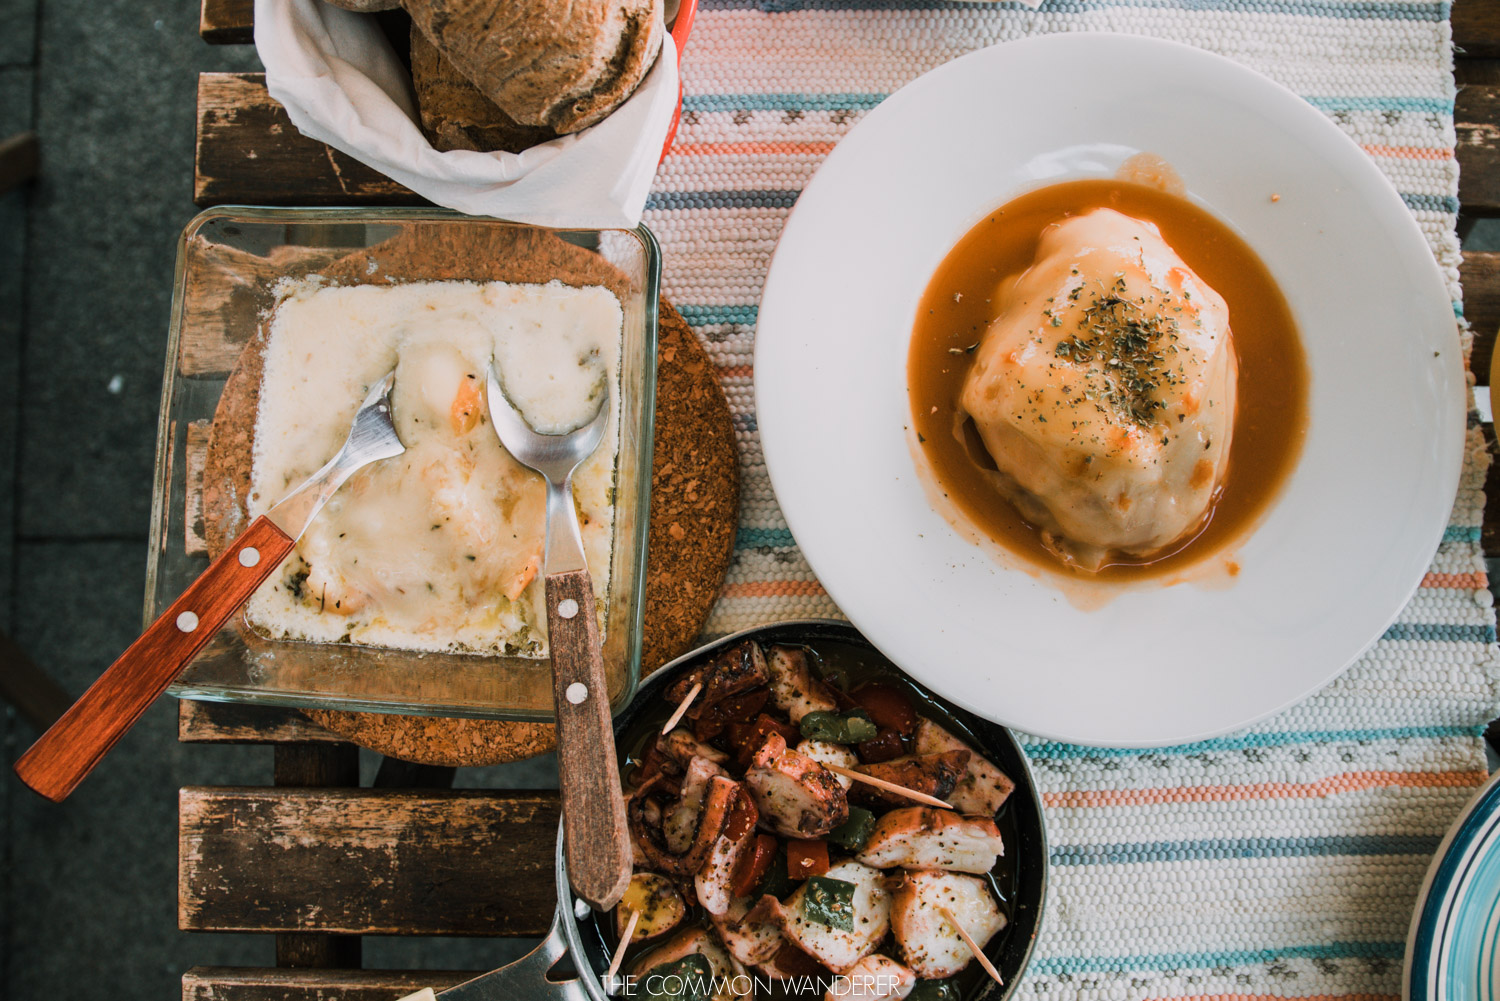 Local food in Porto - Francesinha, grilled octopus, and fresh bread